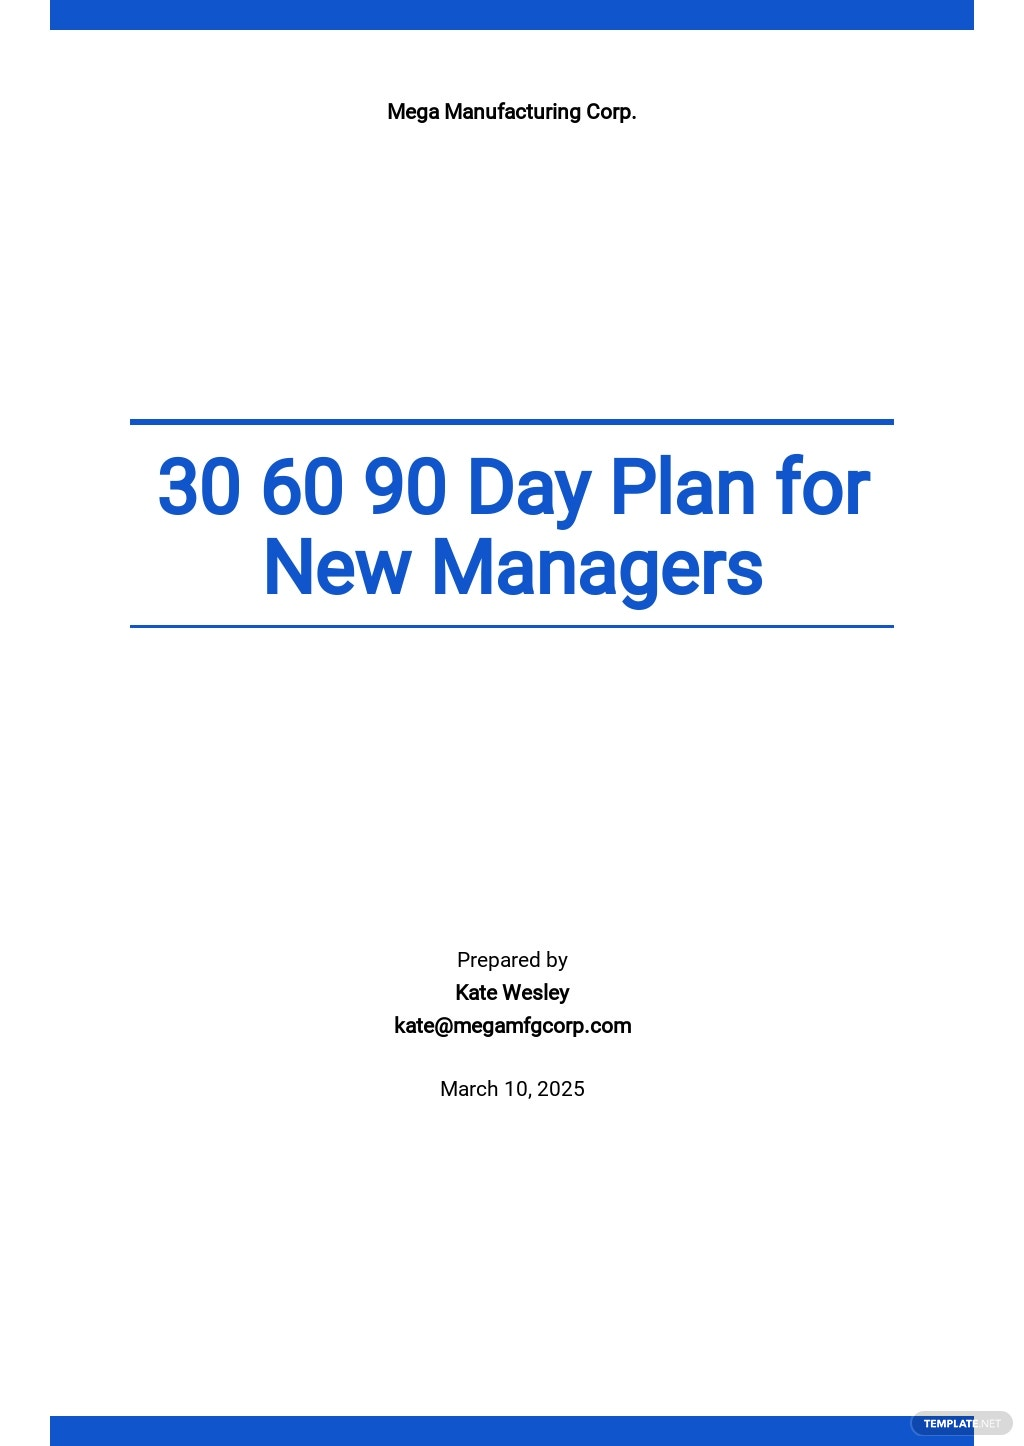 Sample 30 60 90 Day Plan For New Managers Template.jpe